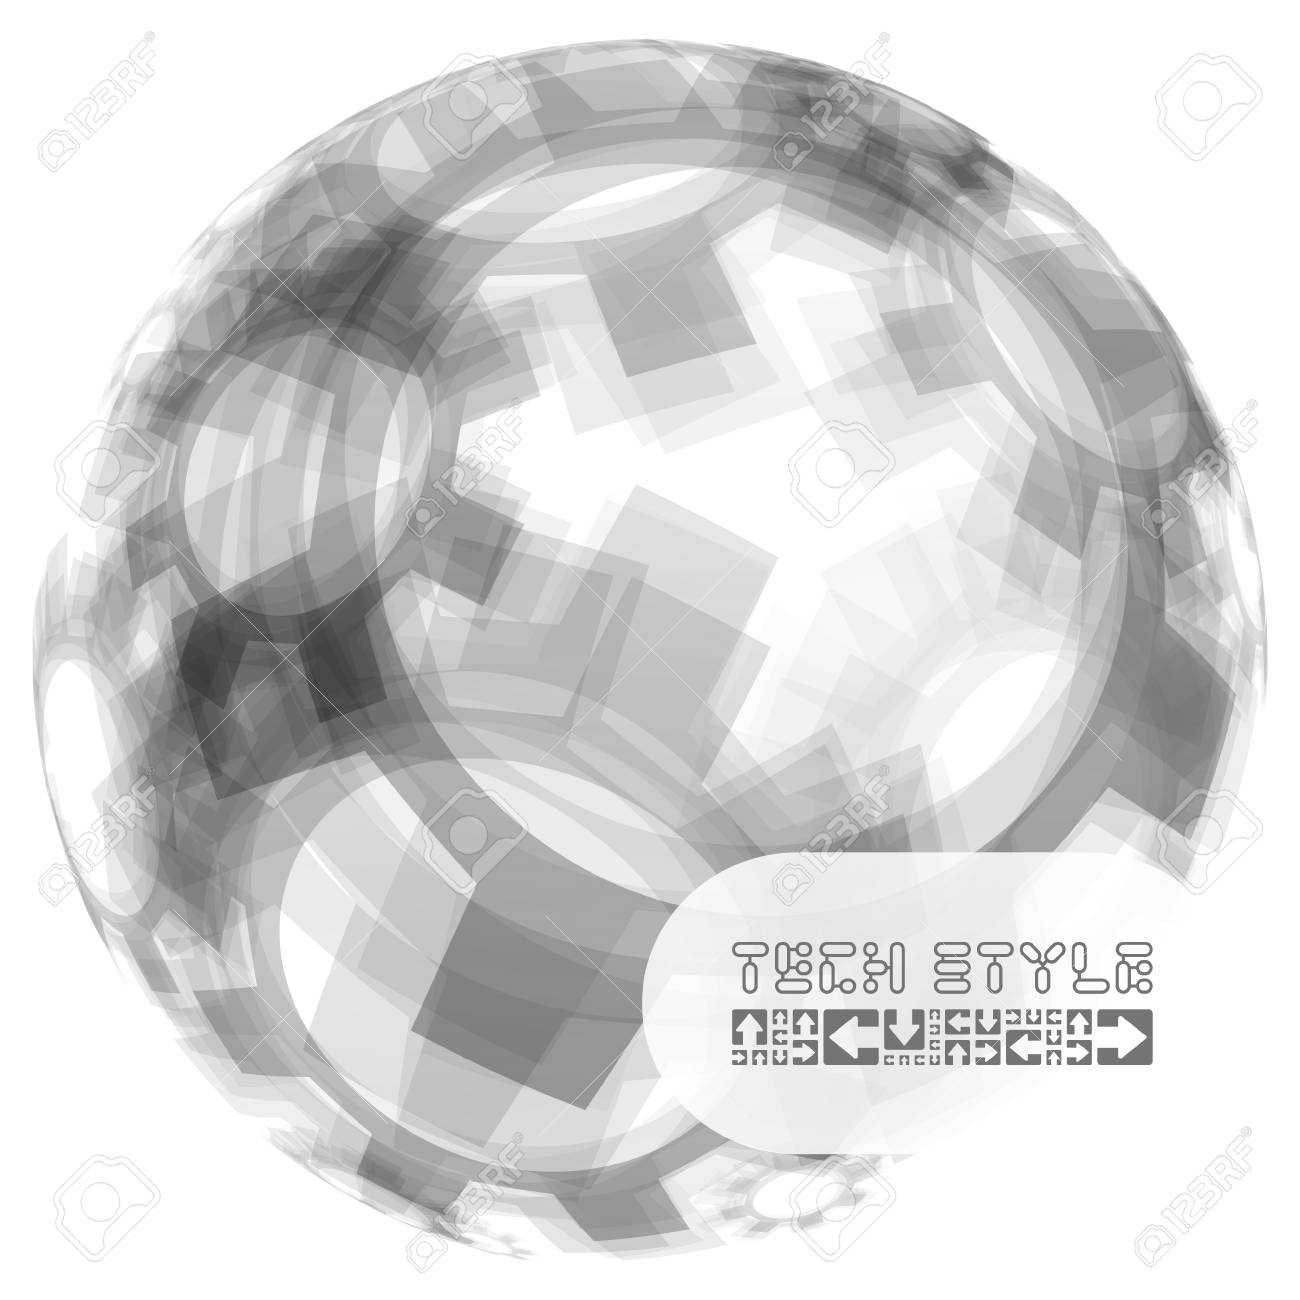 Abstract illustration Stock Vector - 18375760